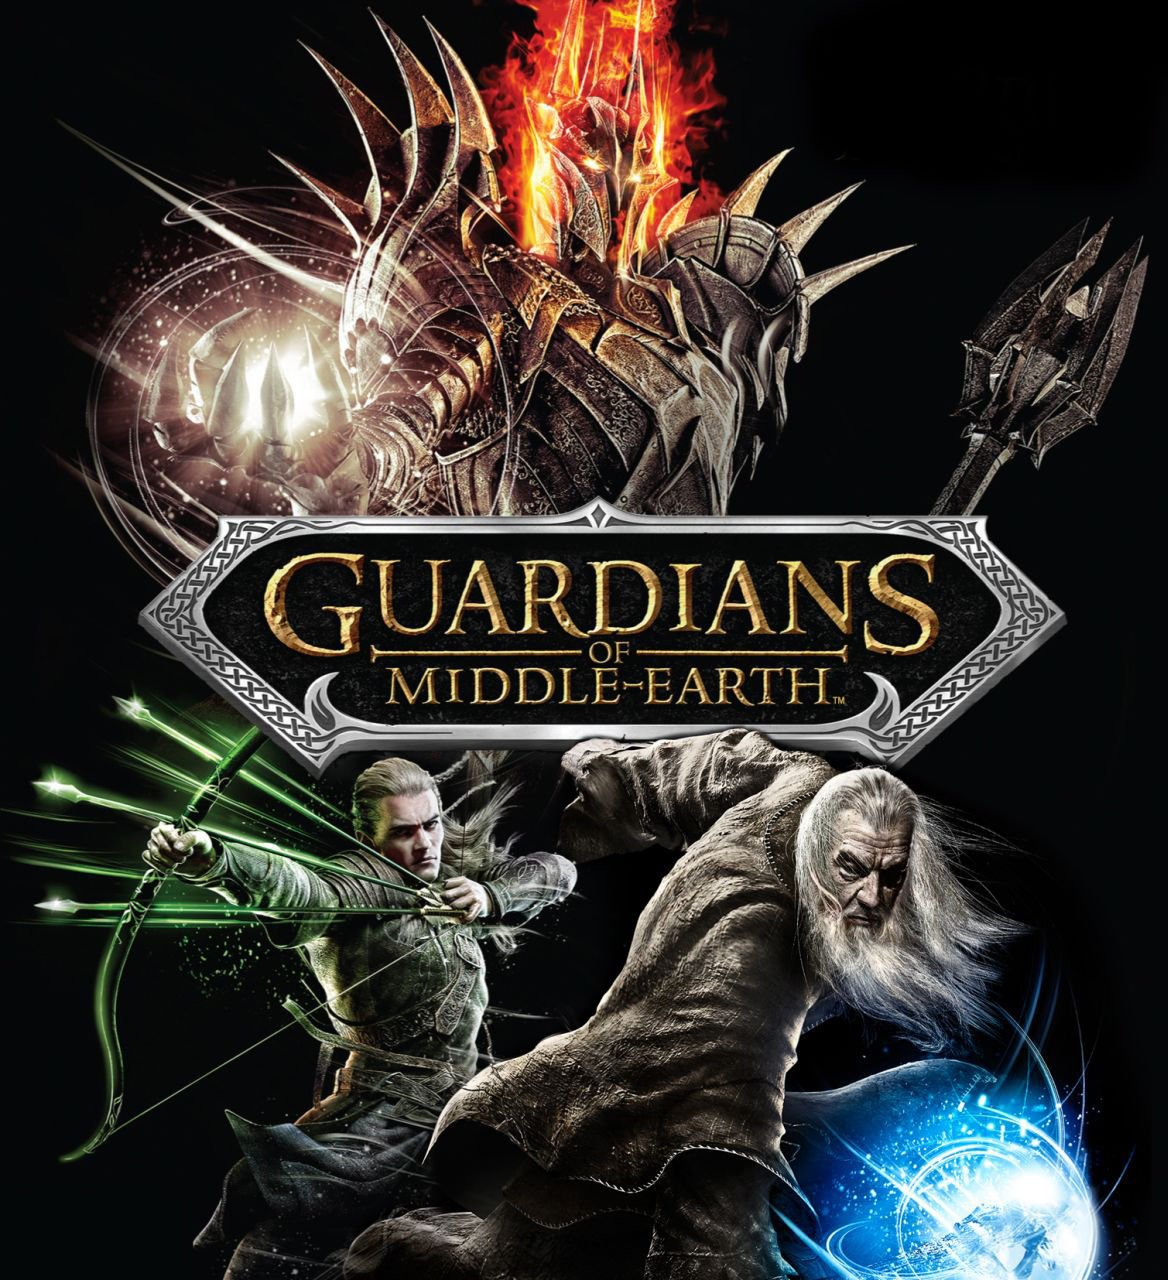 Guardians of Middle-Earth Steam Key PC, 2013, Action.RPG, Strategy and T-Teen